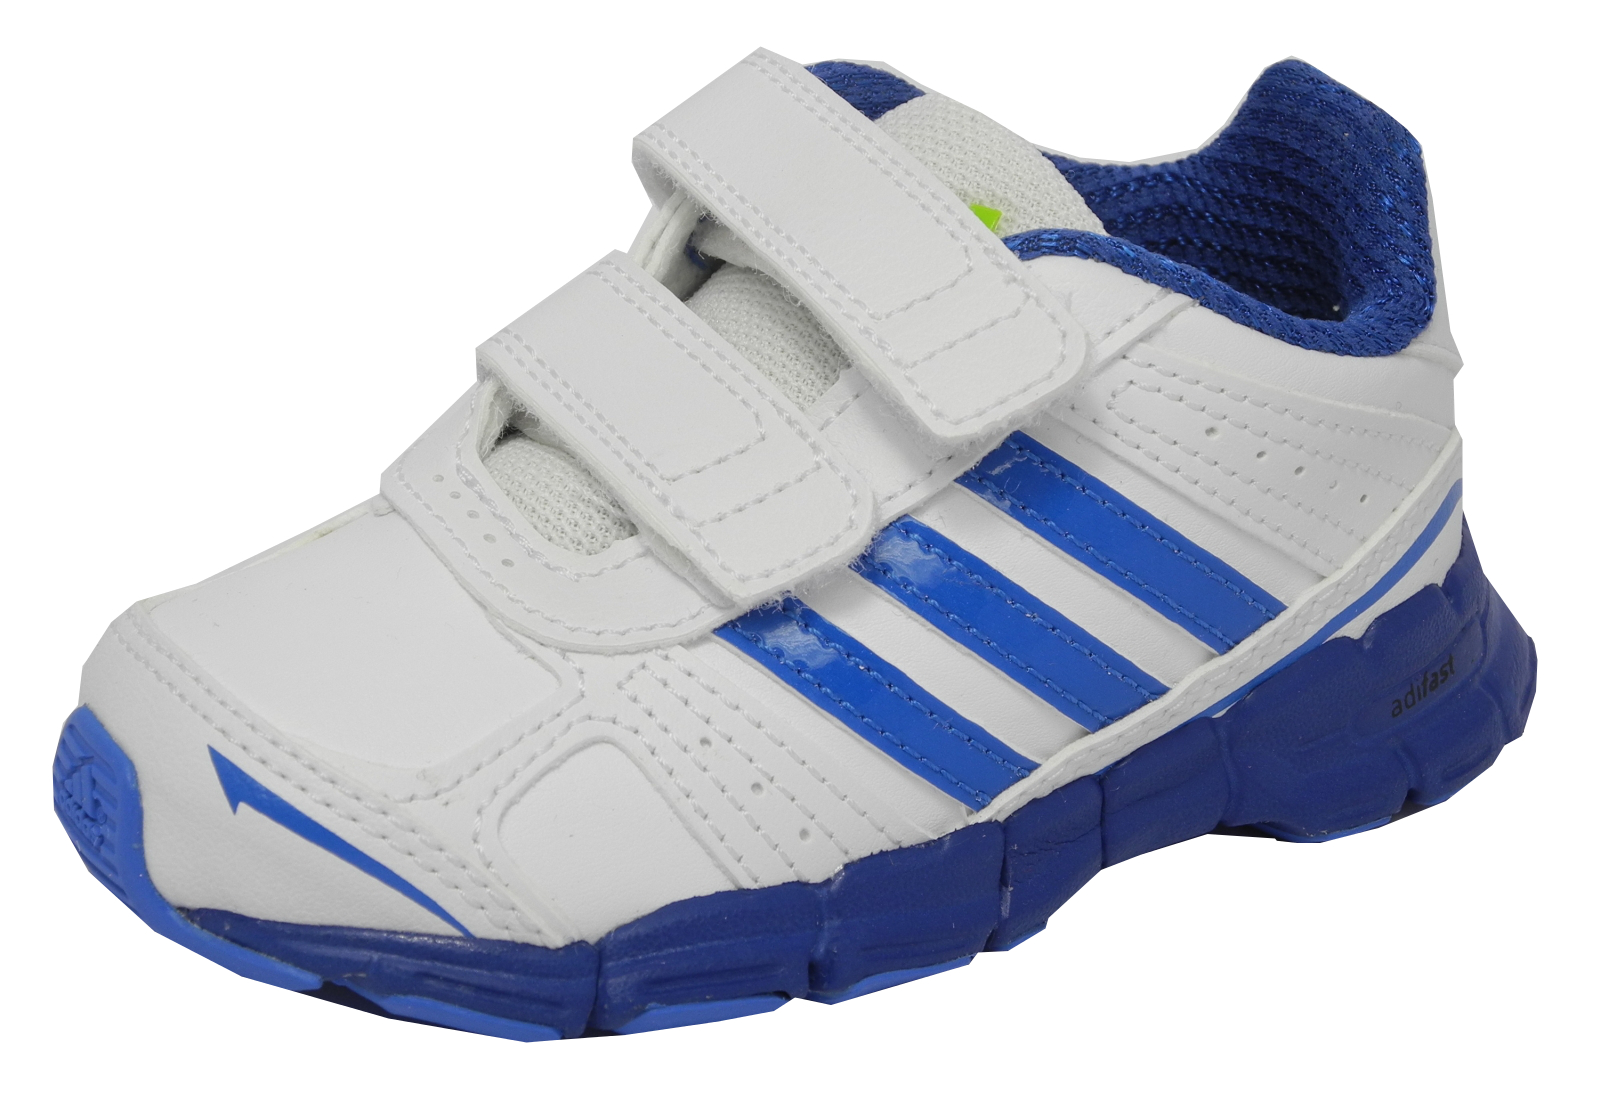 Small Boys Toddlers Kids ADIDAS Adifast Velcro Running Trainers Infant Size 4 Enlarged Preview